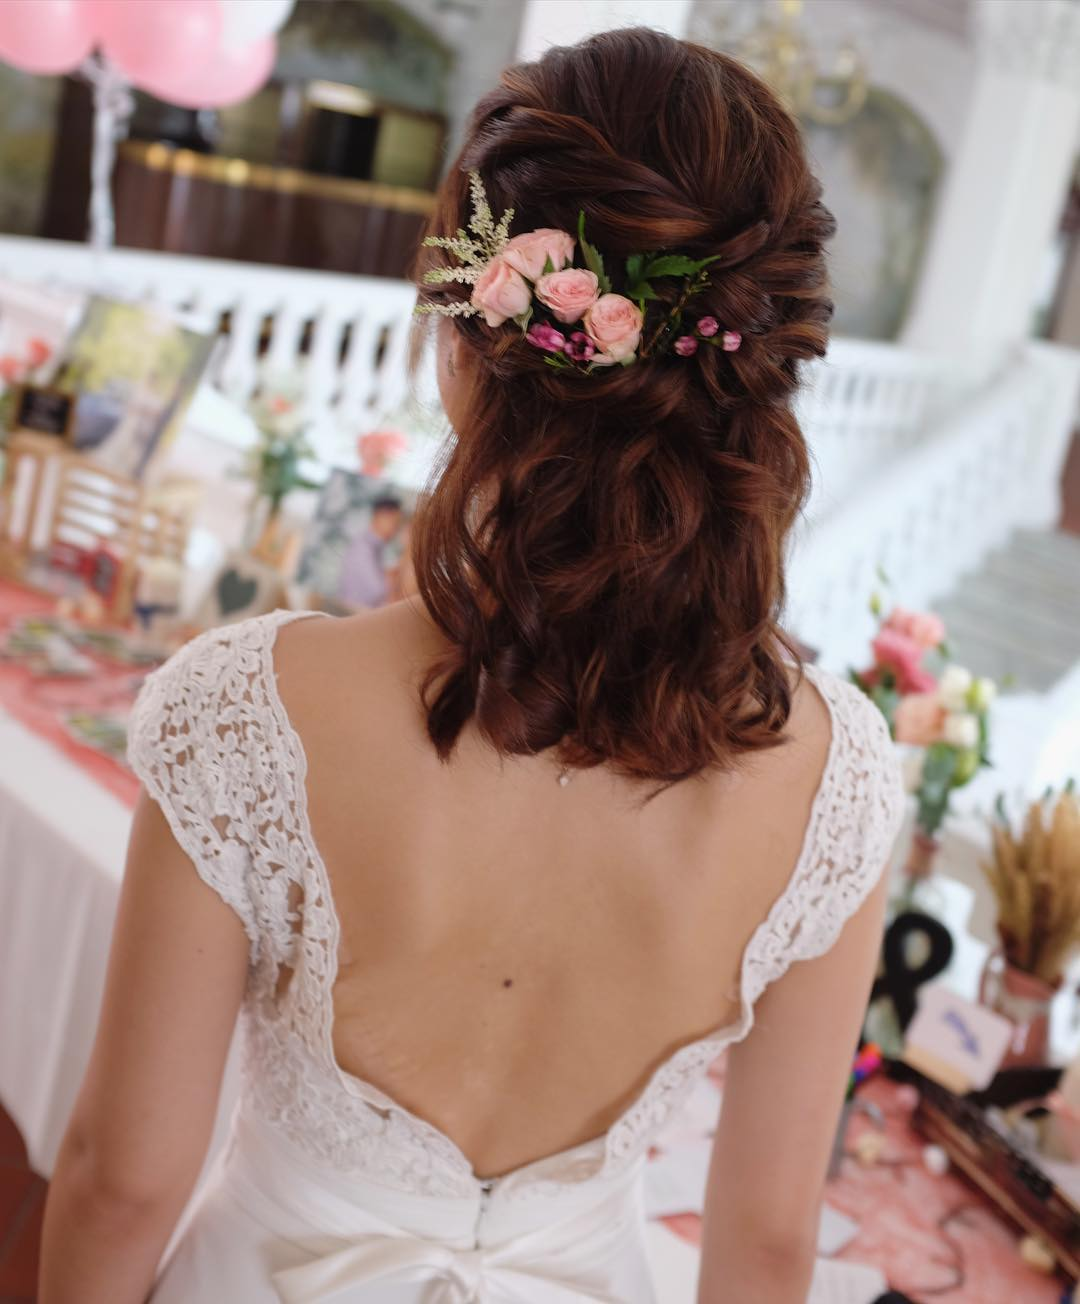 Short Medium Hairstyle With Pink Roses